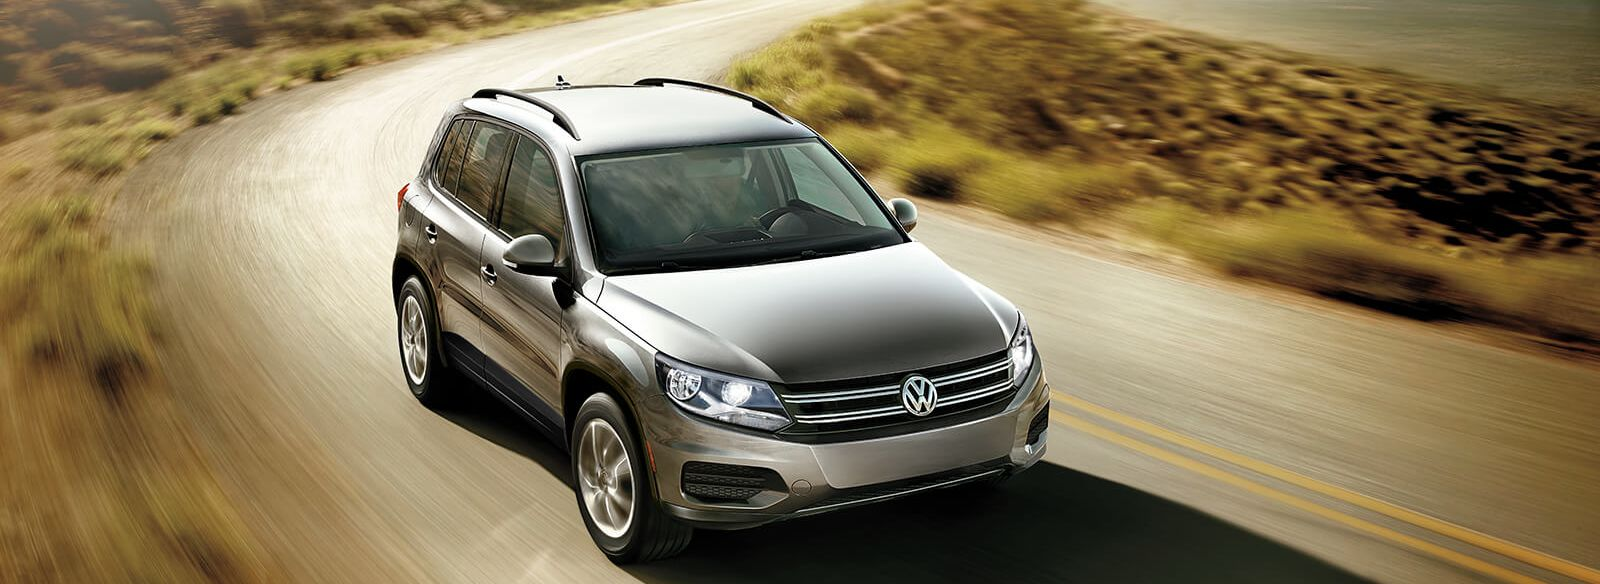 2018 Volkswagen Tiguan Limited Leasing near College Park, MD